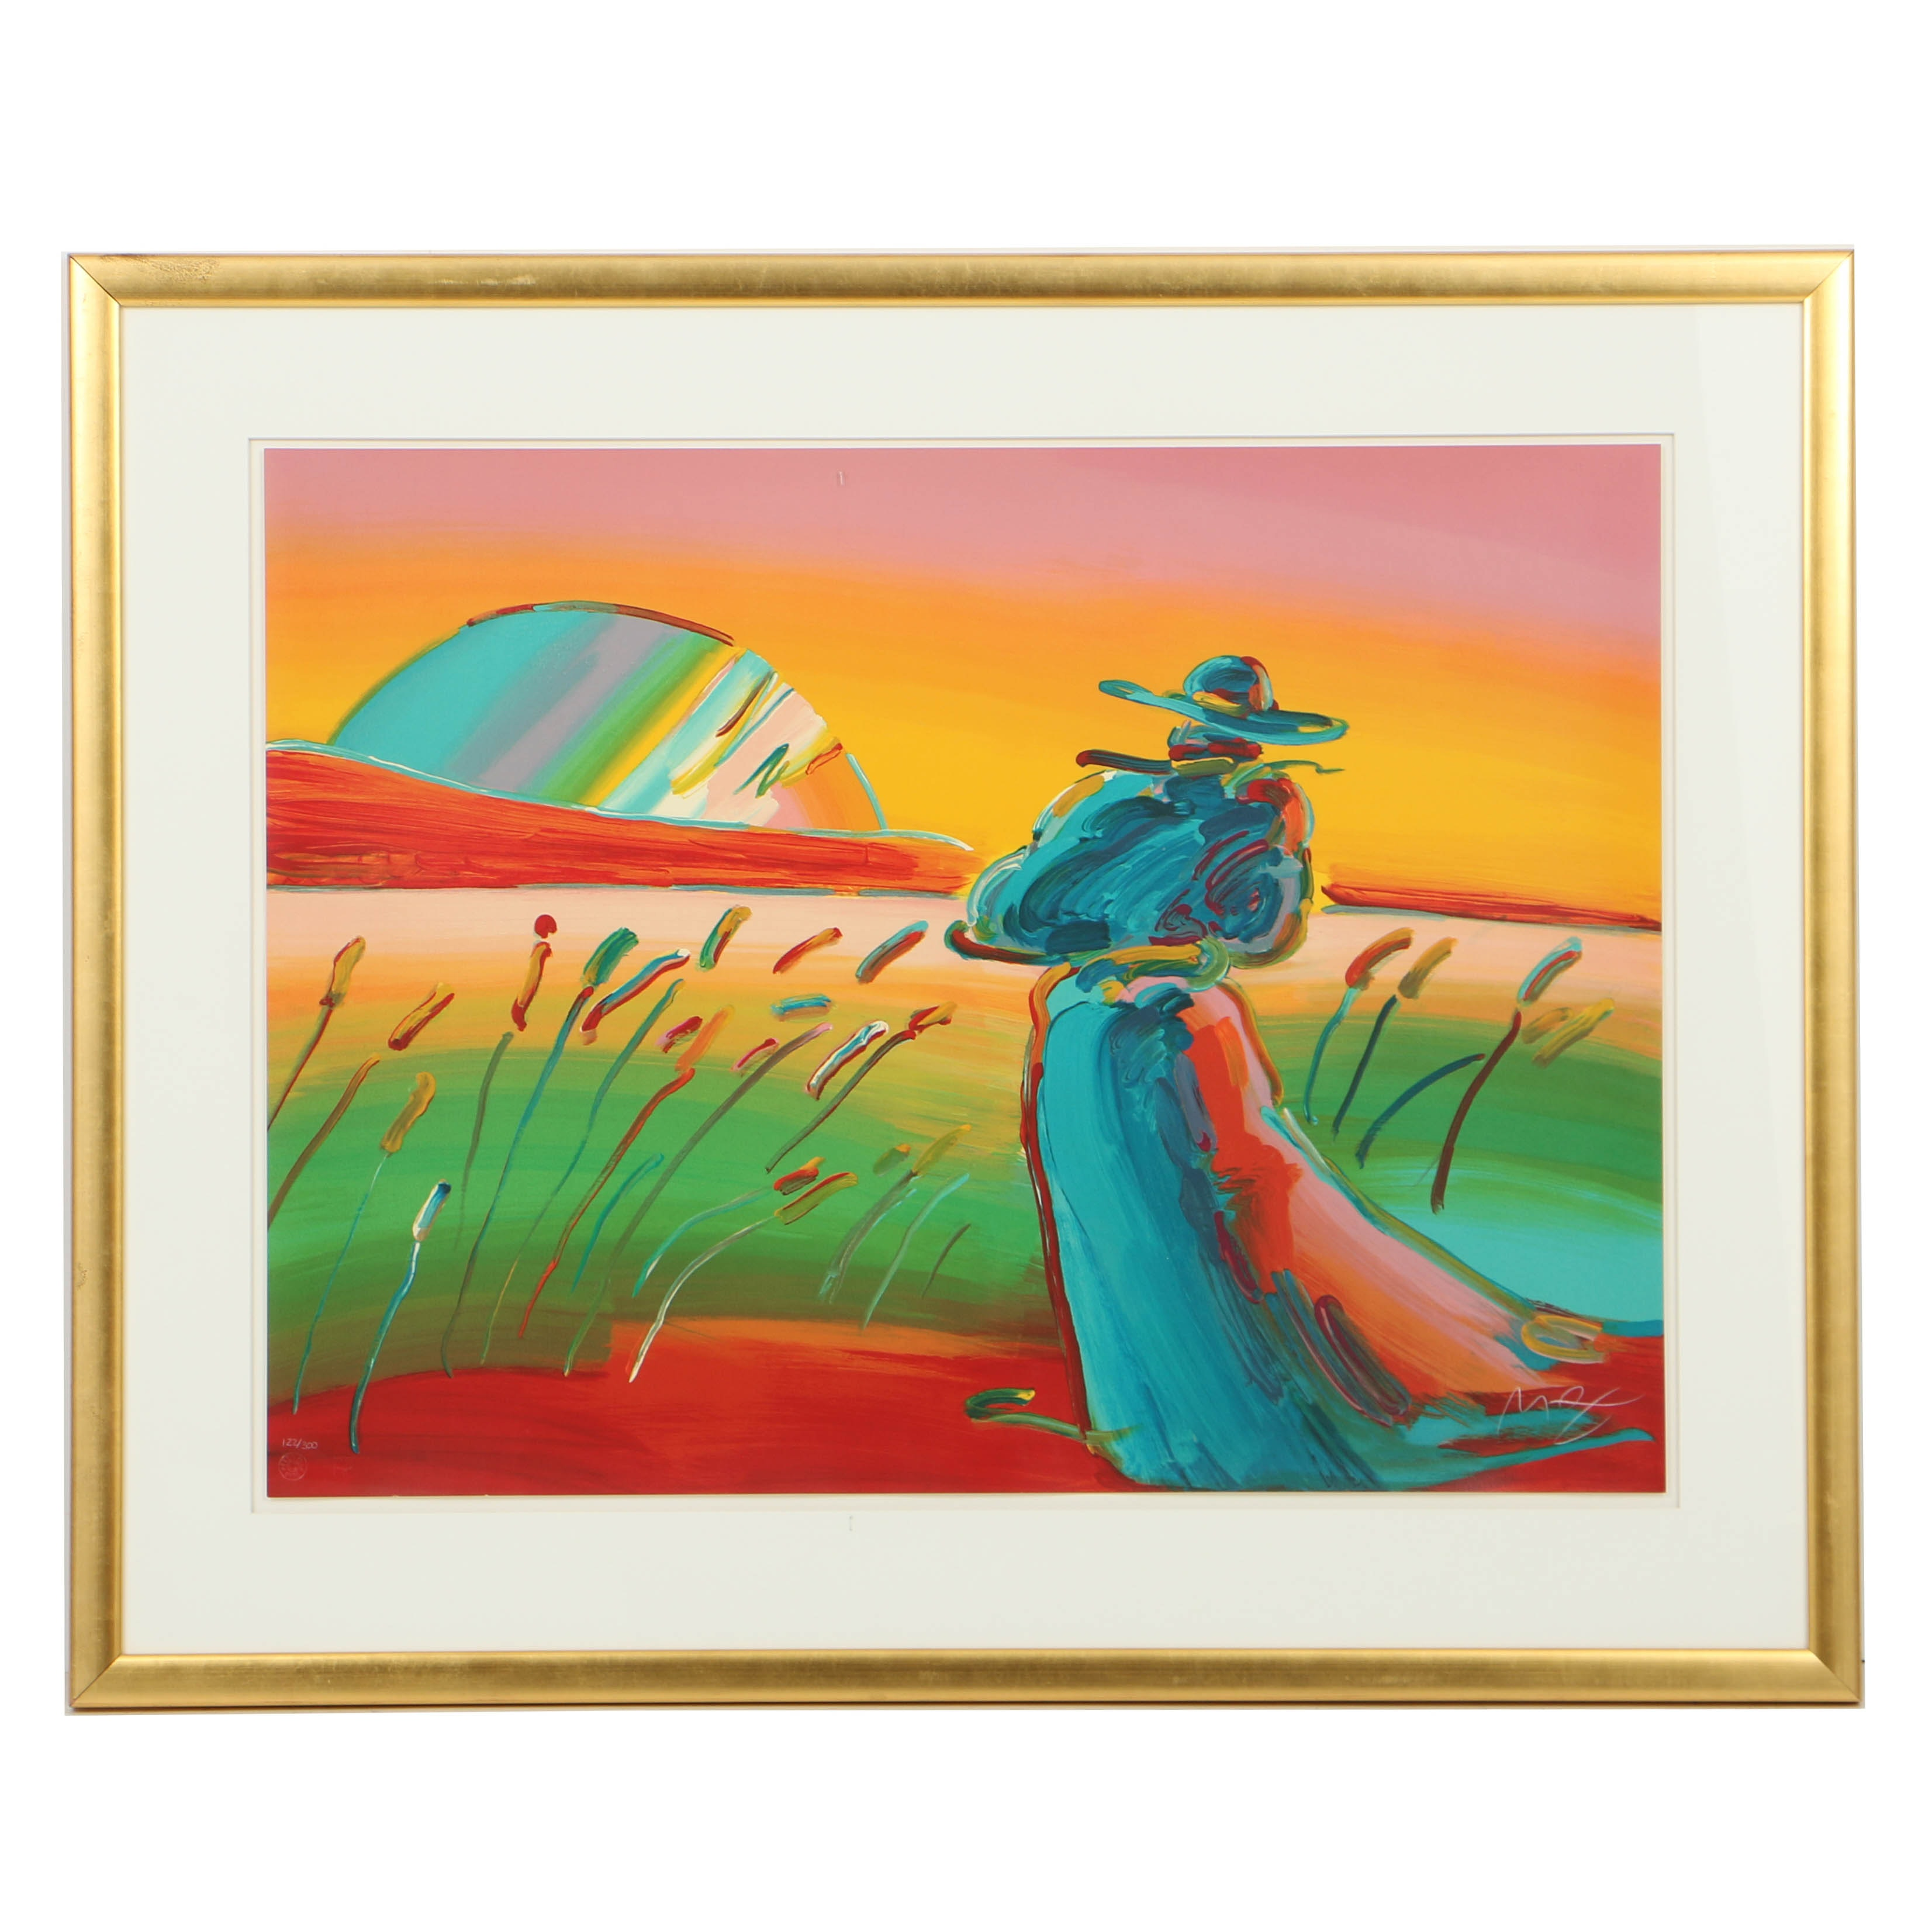 """Peter Max Limited Edition Lithograph """"Walking in Reeds II"""""""